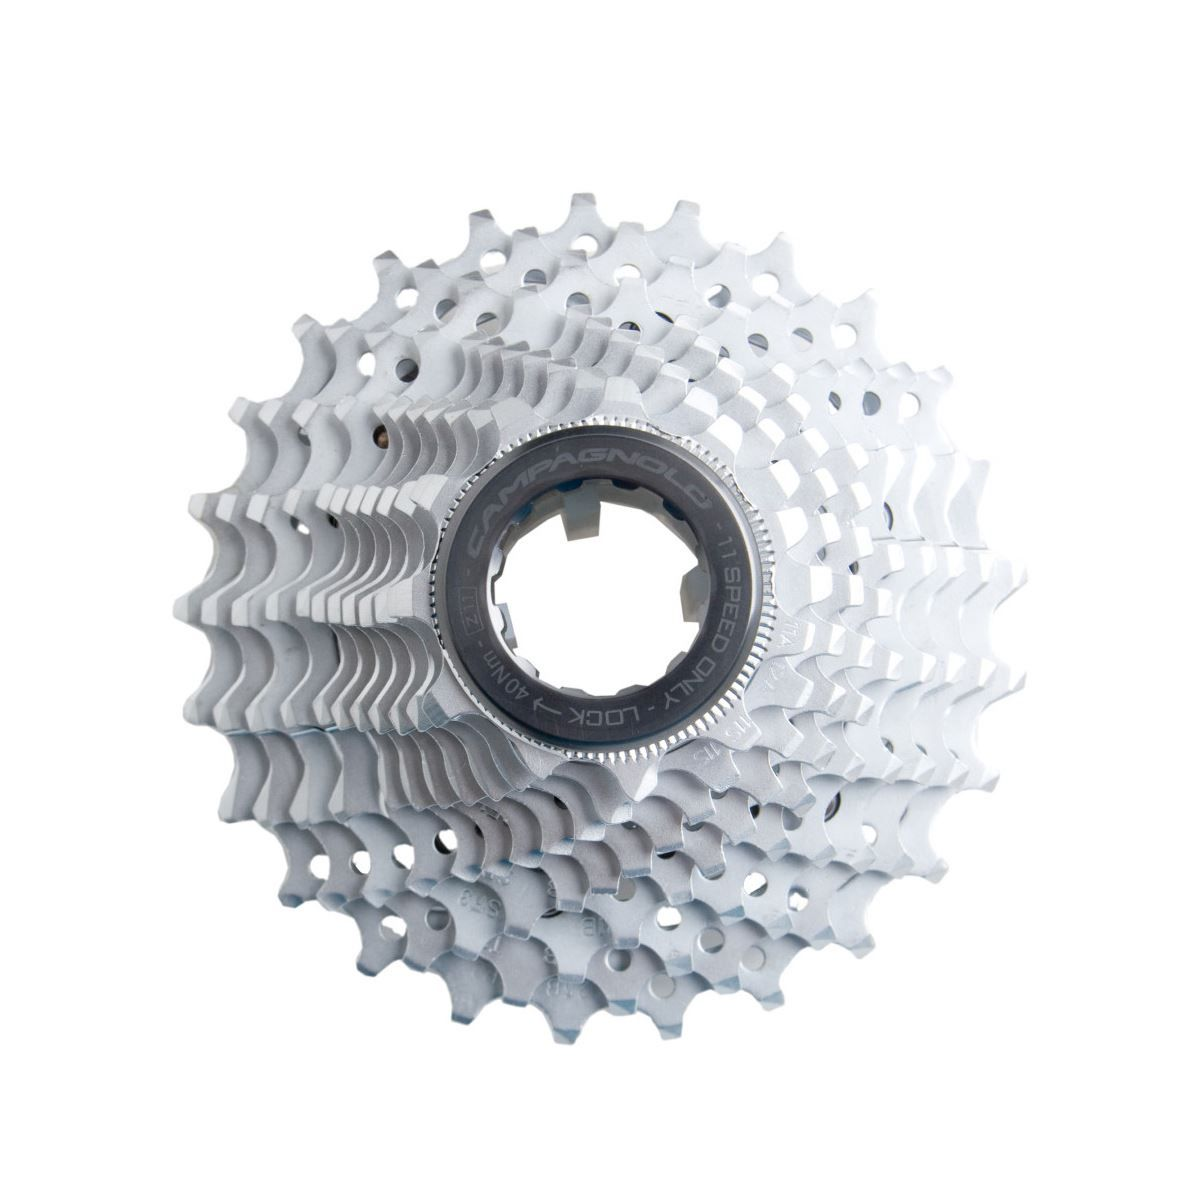 Campagnolo Chorus Cassette 11 Speed Us 12-27T:  11Spd 12-27T